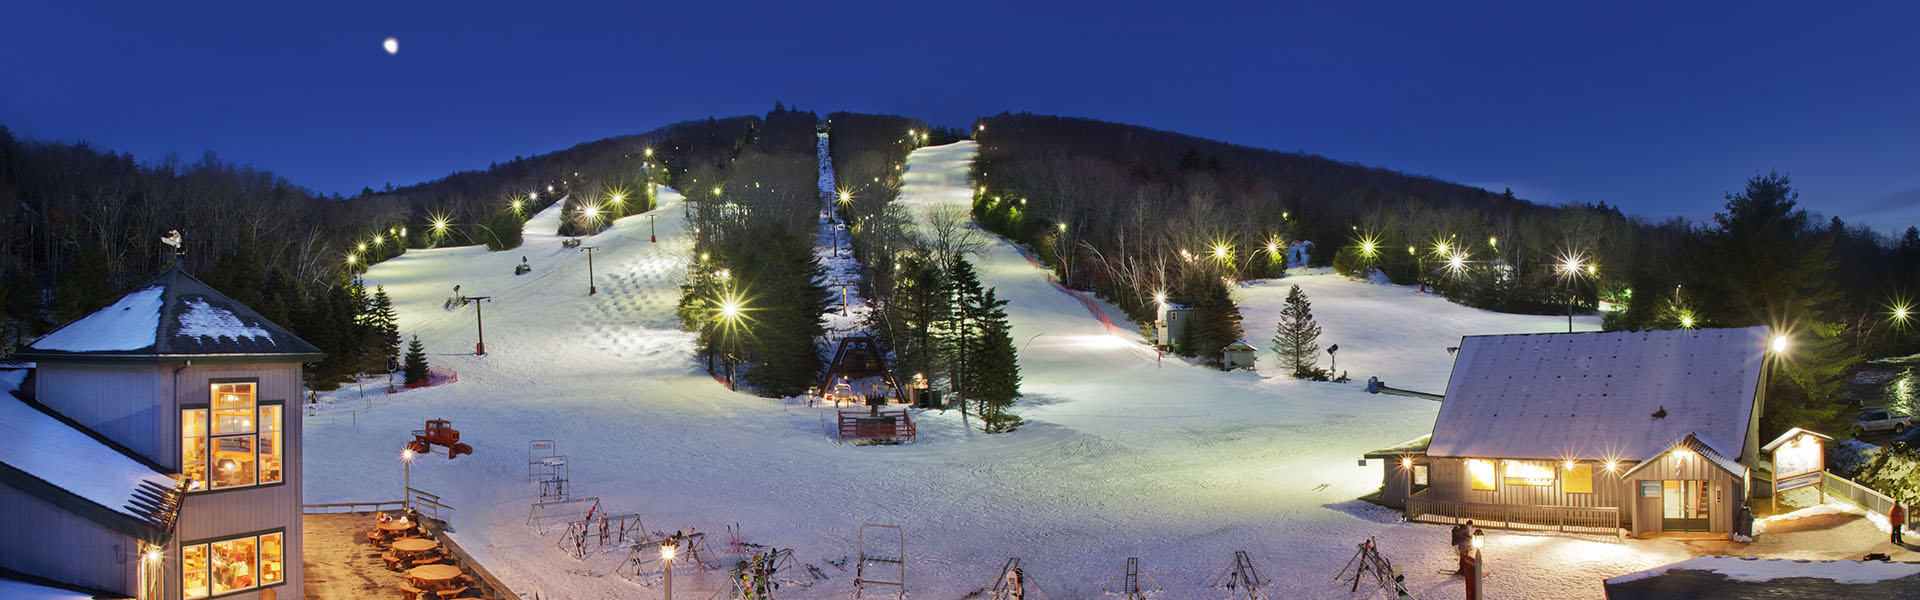 Aerial view of Ski Sundown mountain and trails at night